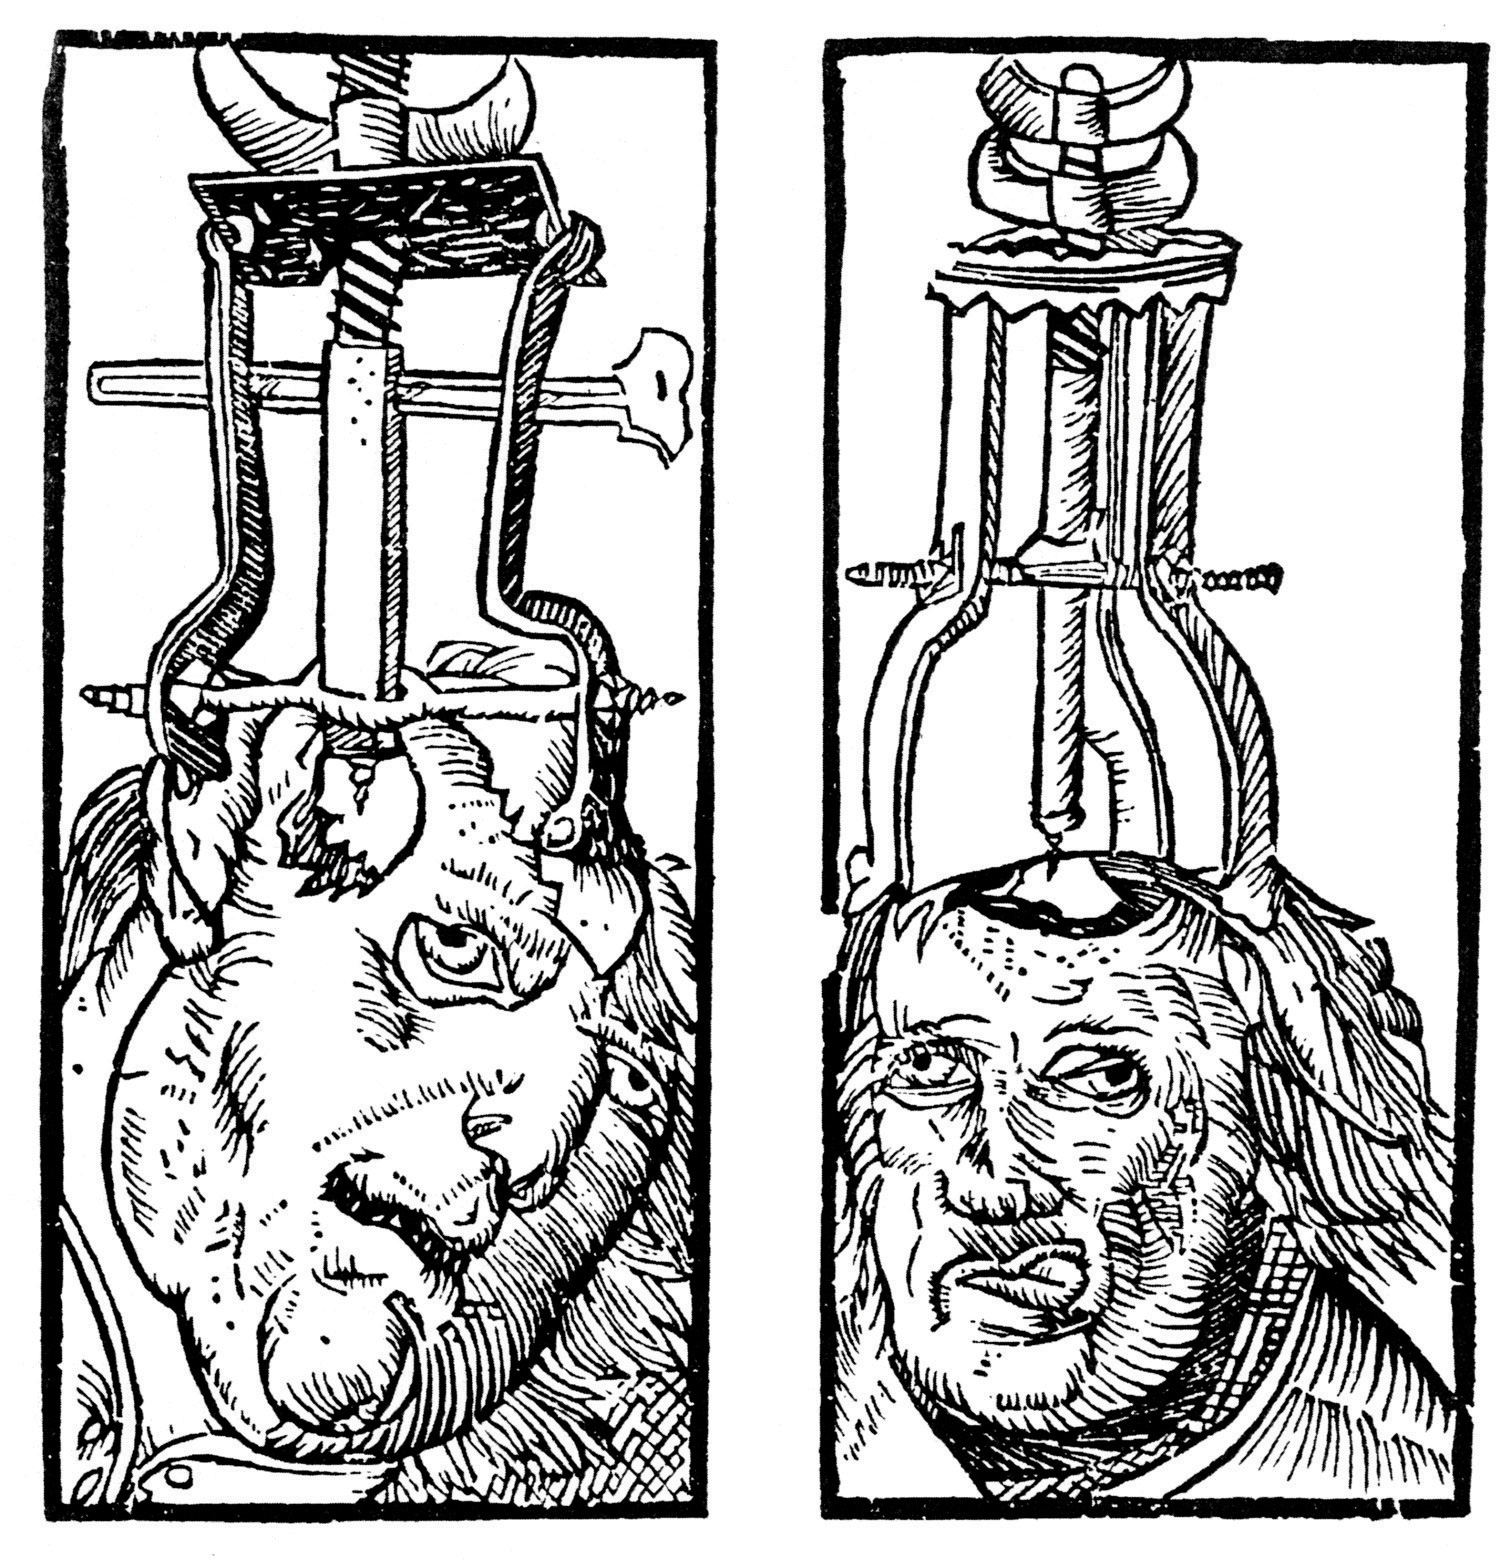 Trepanation (drilling holes in the skull) has been used since prehistoric times in attempts to cure epilepsy, schizophrenia, and other psychological disorders.